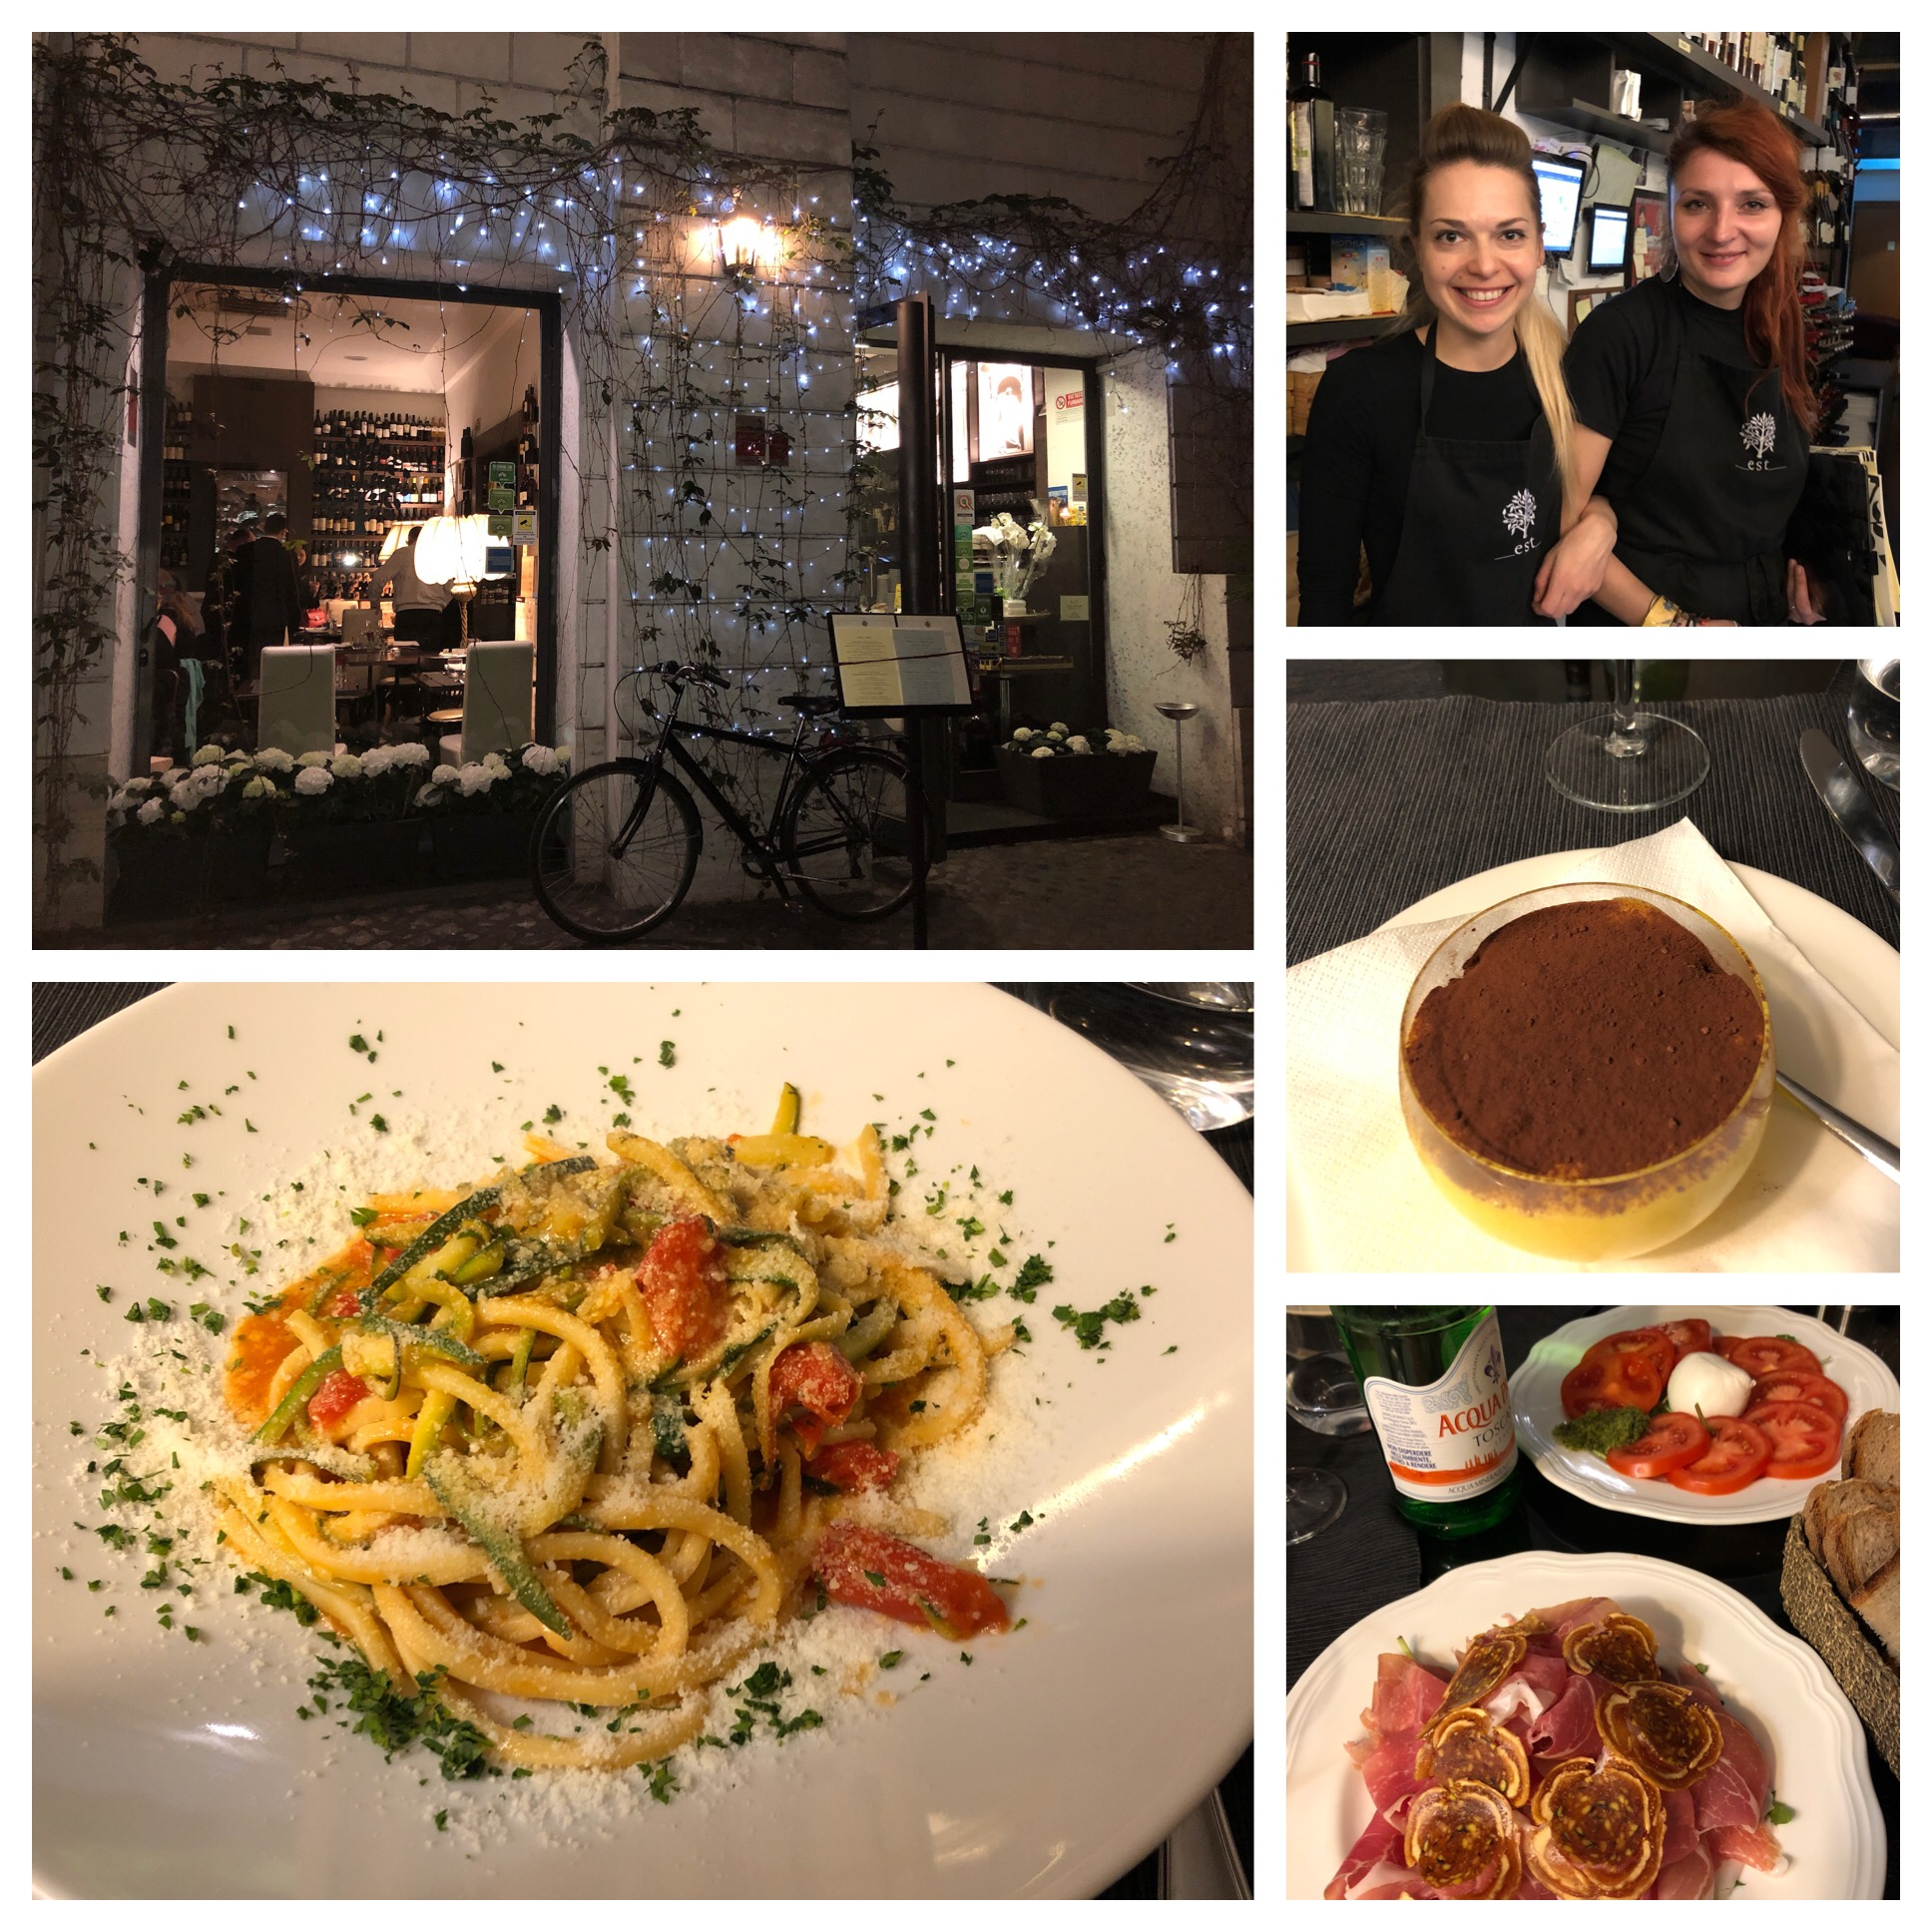 The manager is the woman on the left, appetizers were prosciutto with fig and caprese salad, a pasta entree with fresh tomato and zucchini and tiramisu. All fantastic. I'm eating pasta everyday. Glad I read that recent article that said studies show people who eat pasta lose more weight than people who don't. Relief!